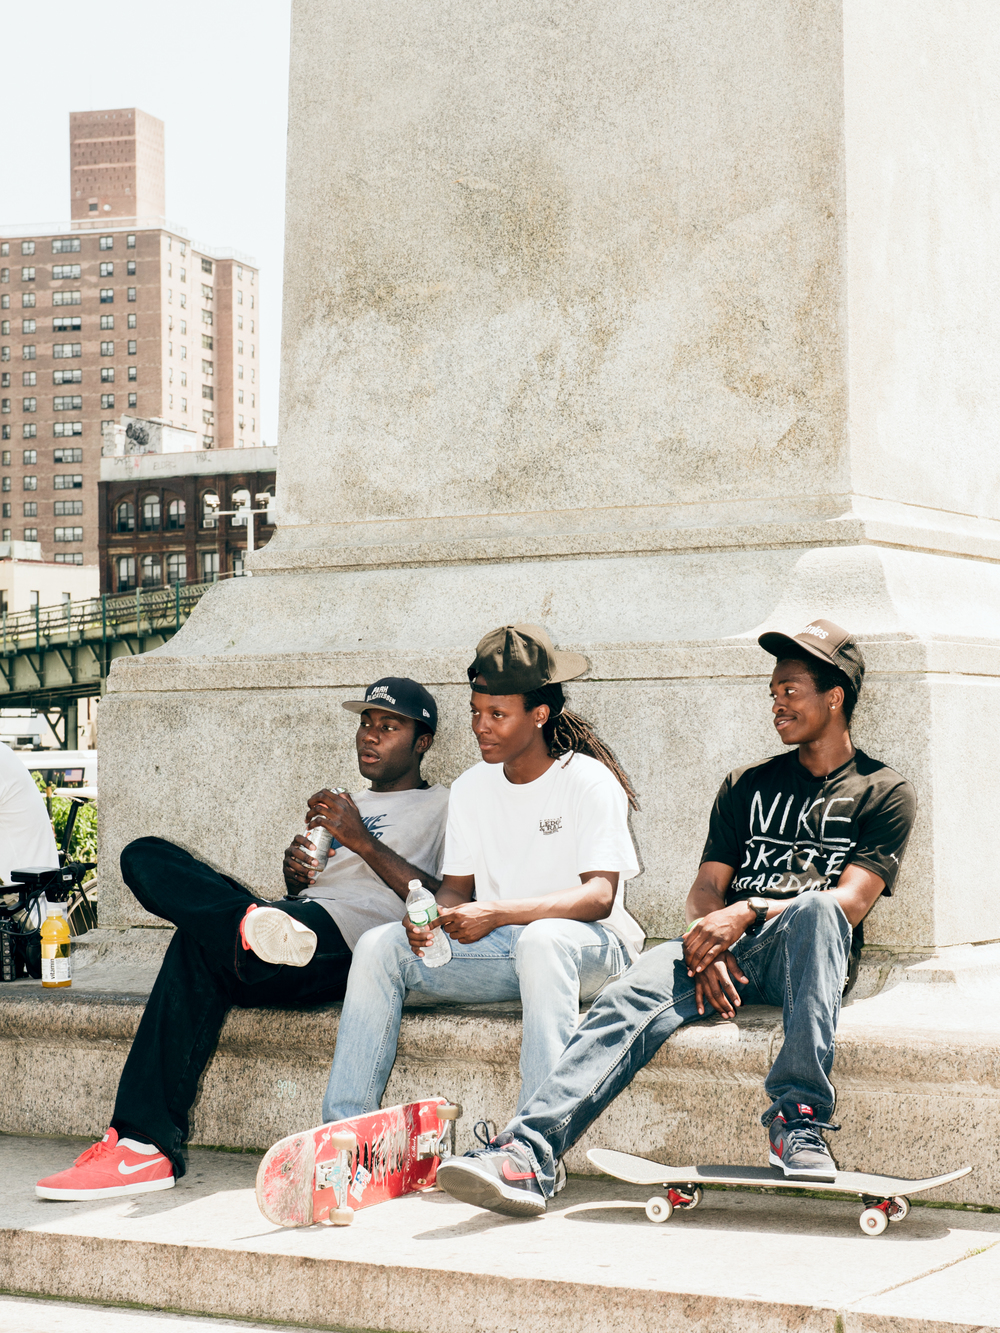 Go Skateboarding Day, New York  Nike